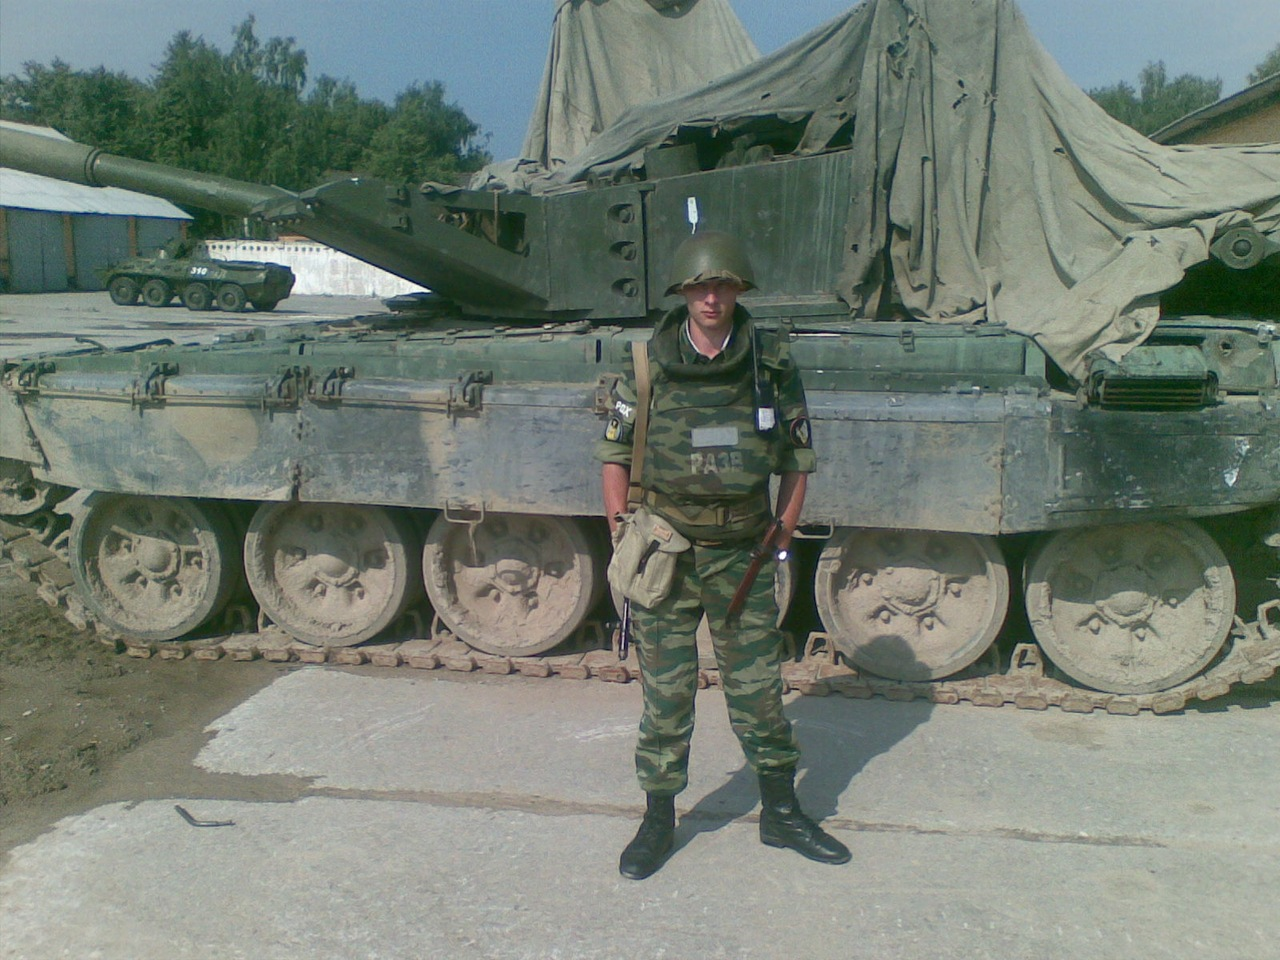 The T-80s future in the Russian Army - Page 13 EuhRXj-XEAIw7B8?format=jpg&name=large